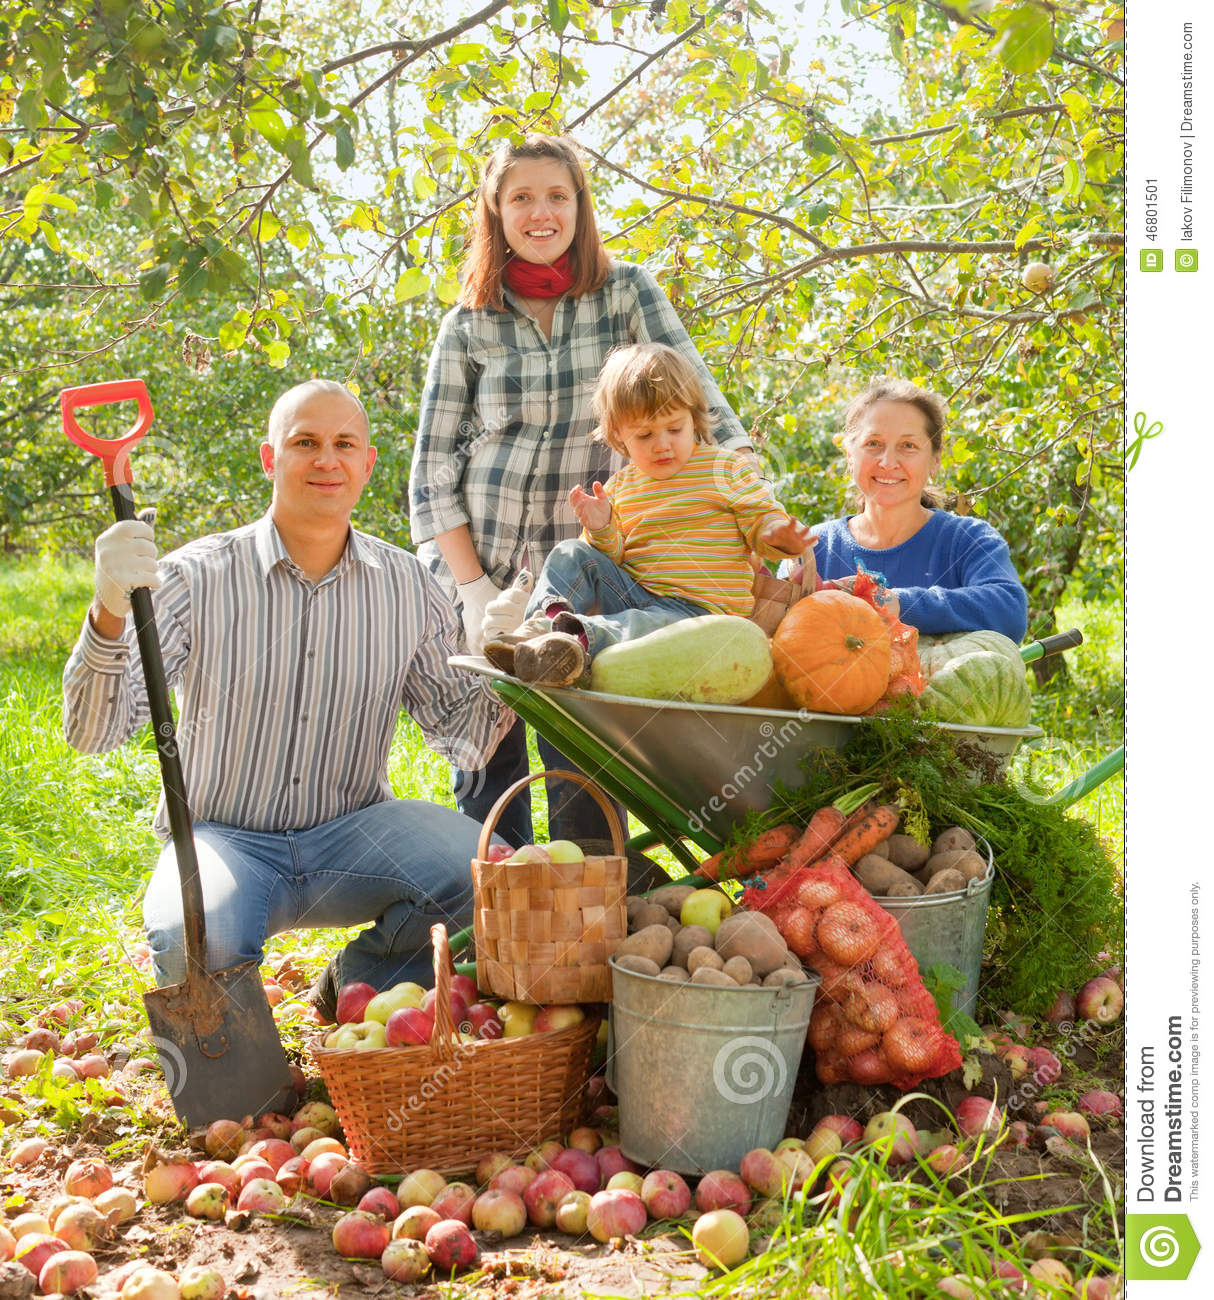 Happy Family In Vegetable Garden Stock Image